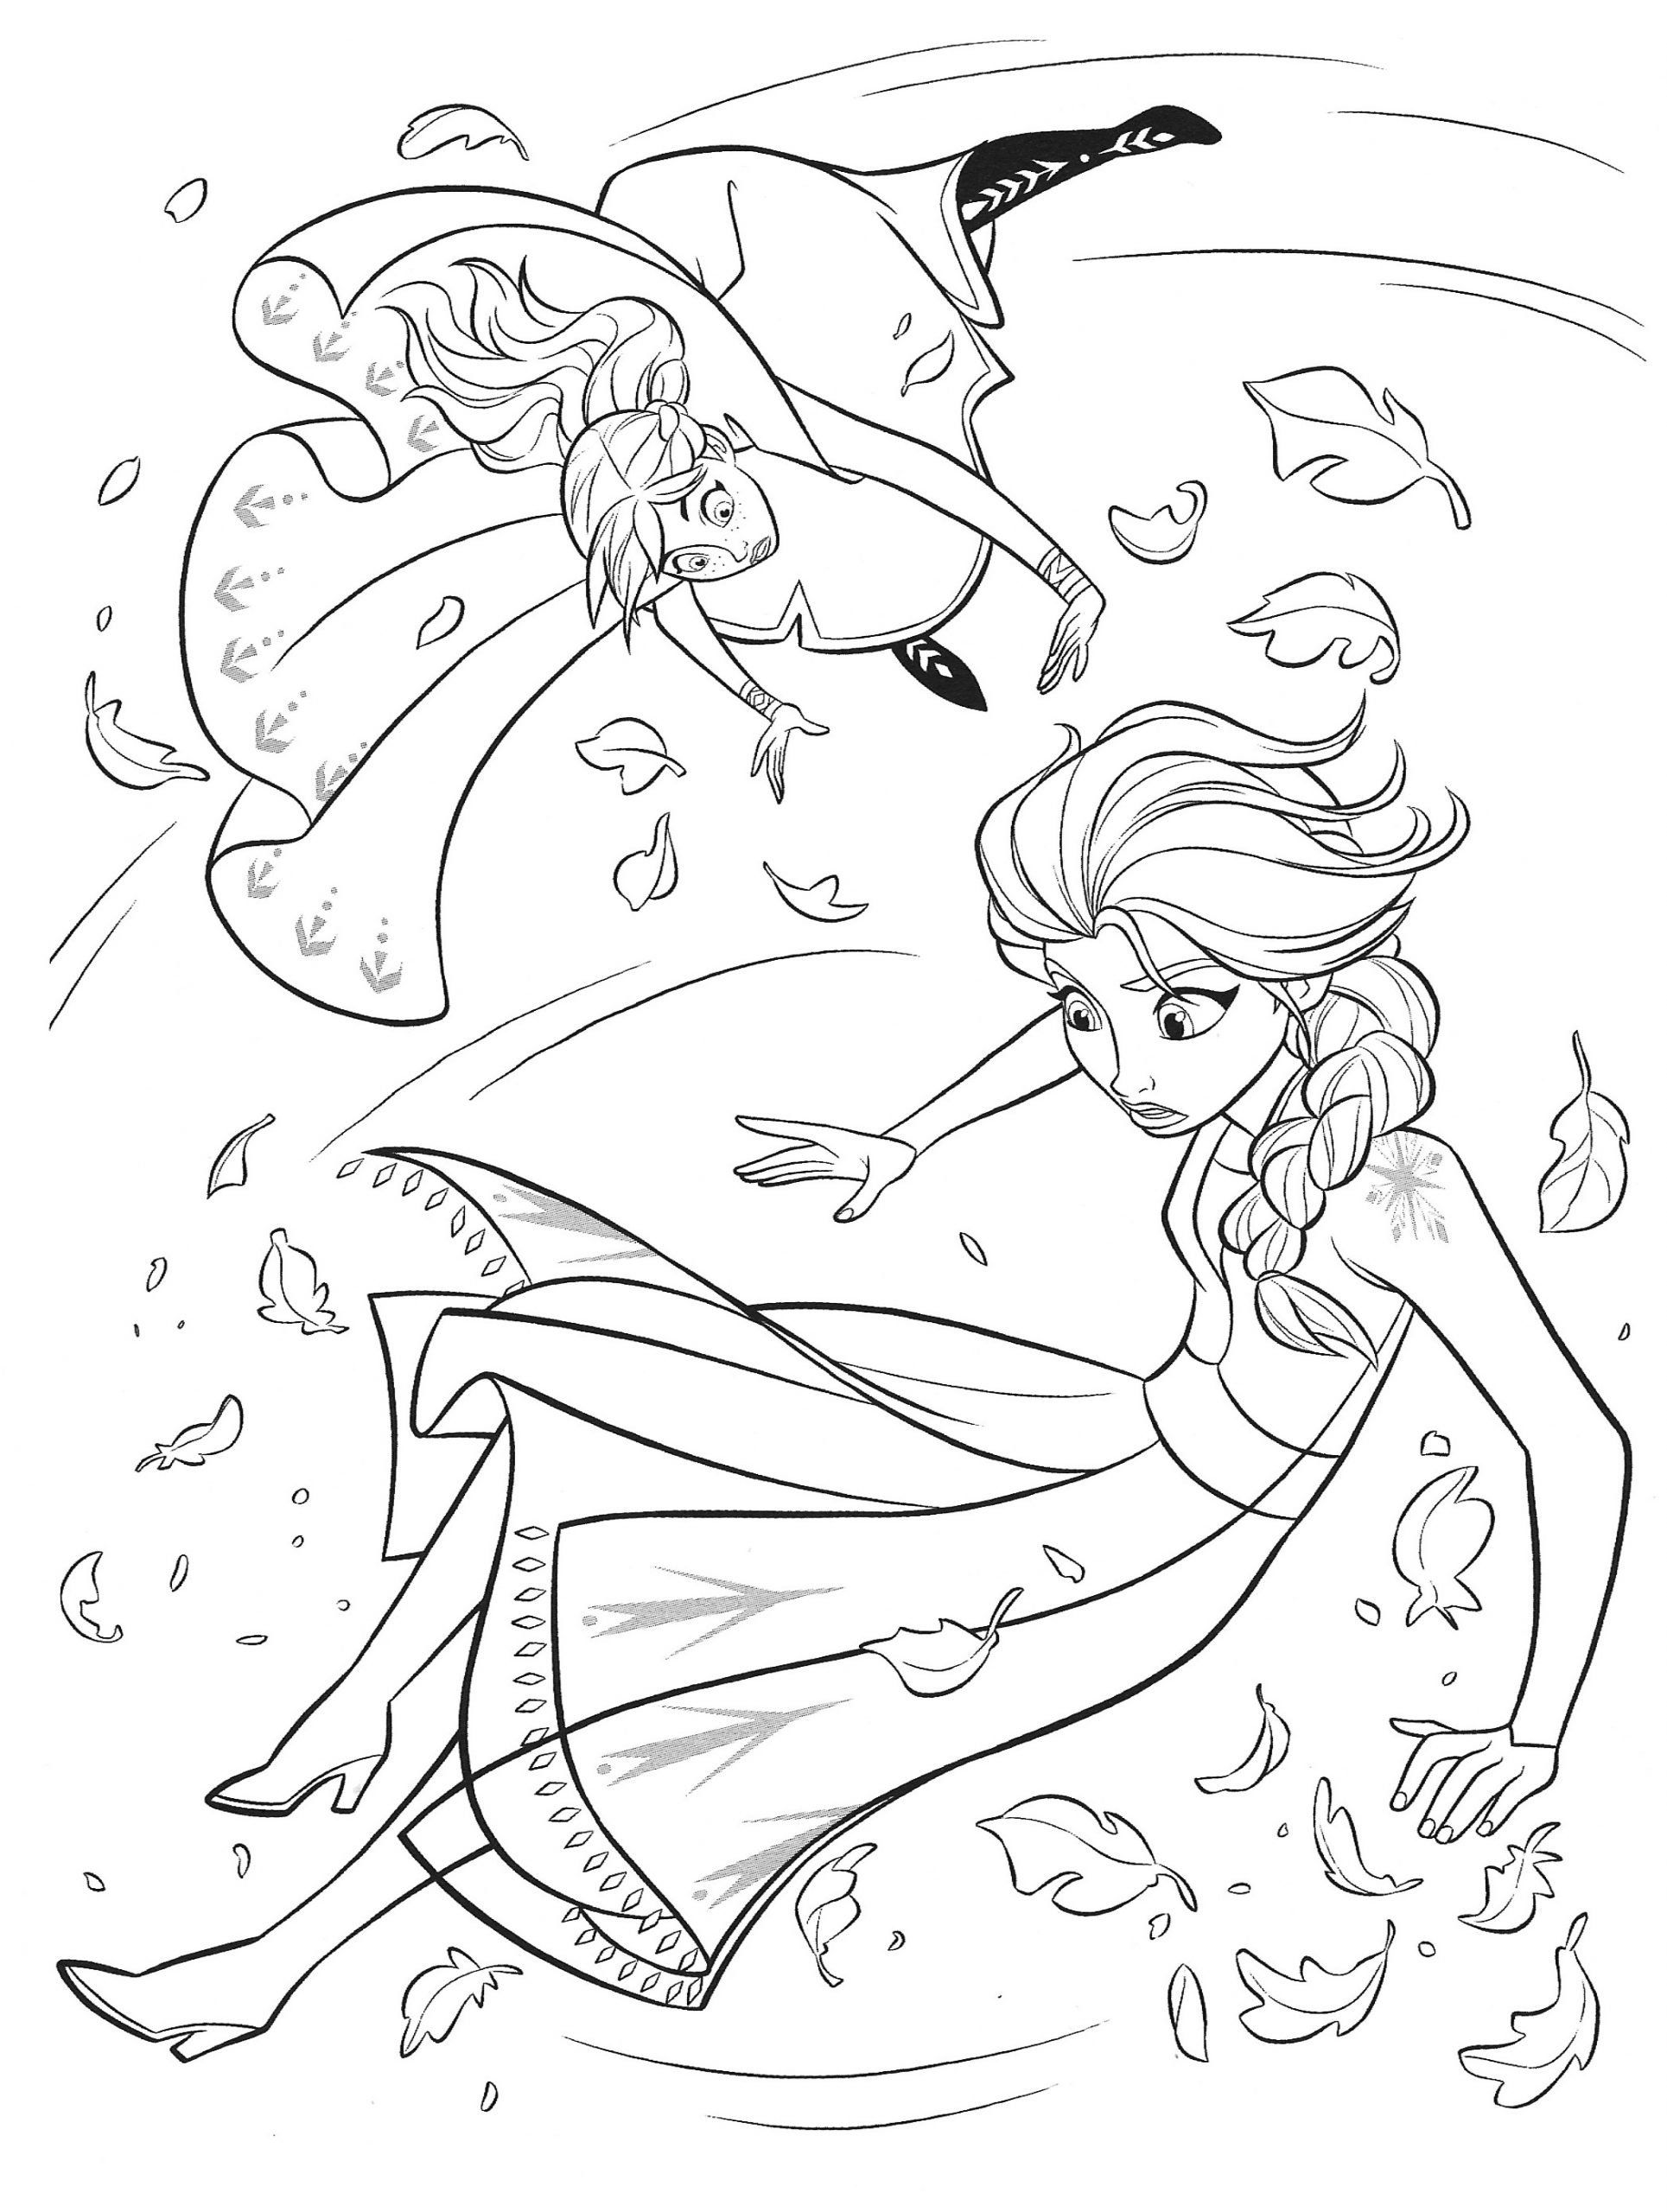 Anna And Elsa Coloring Page Frozen 2 Elsa And Anna Coloring Pages Youloveit Elsa Coloring Pages Disney Coloring Pages Frozen Coloring Pages